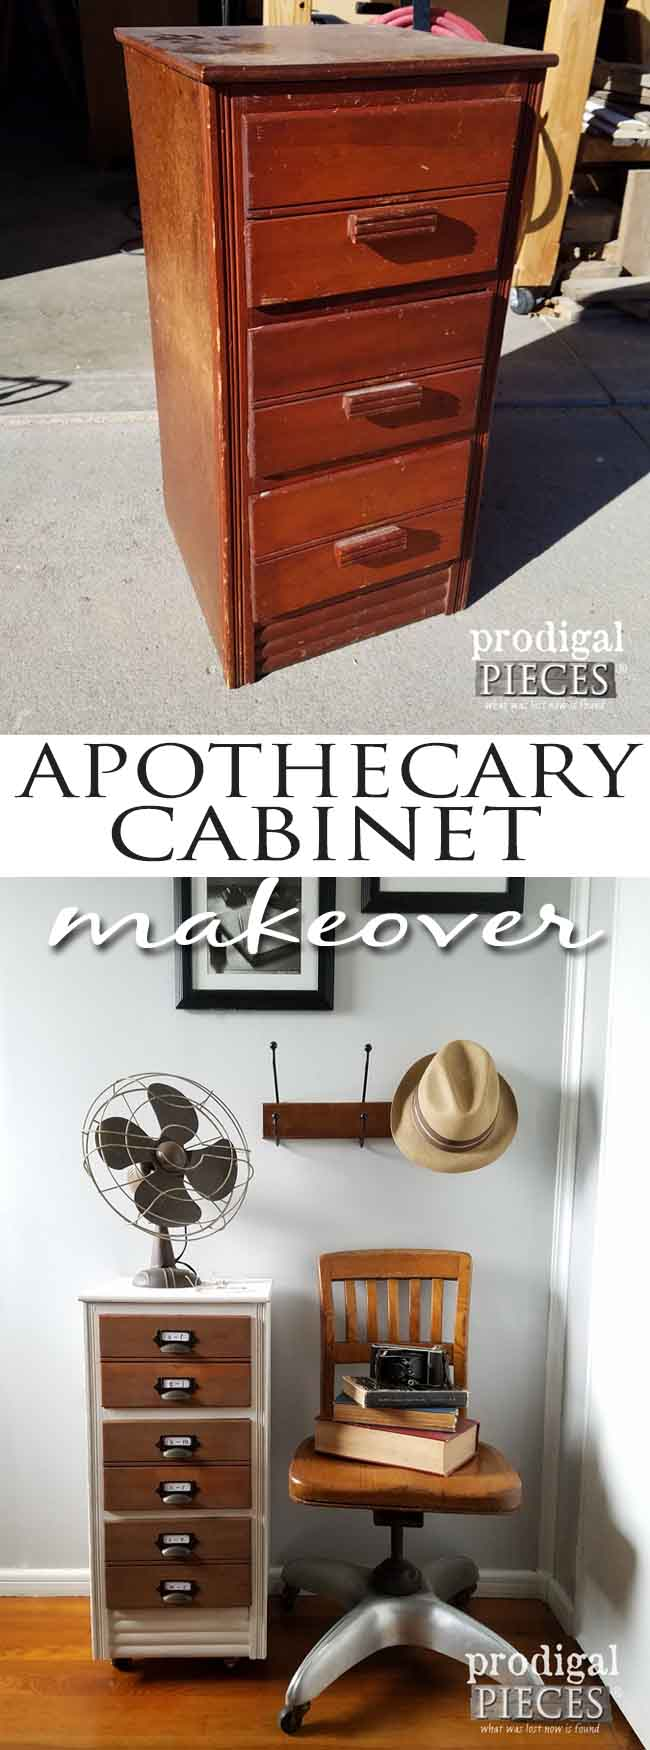 Ugly outdated stand gets industrial apothecary cabinet makeover. Get the DIY steps by Prodigal Pieces here at prodigalpieces.com